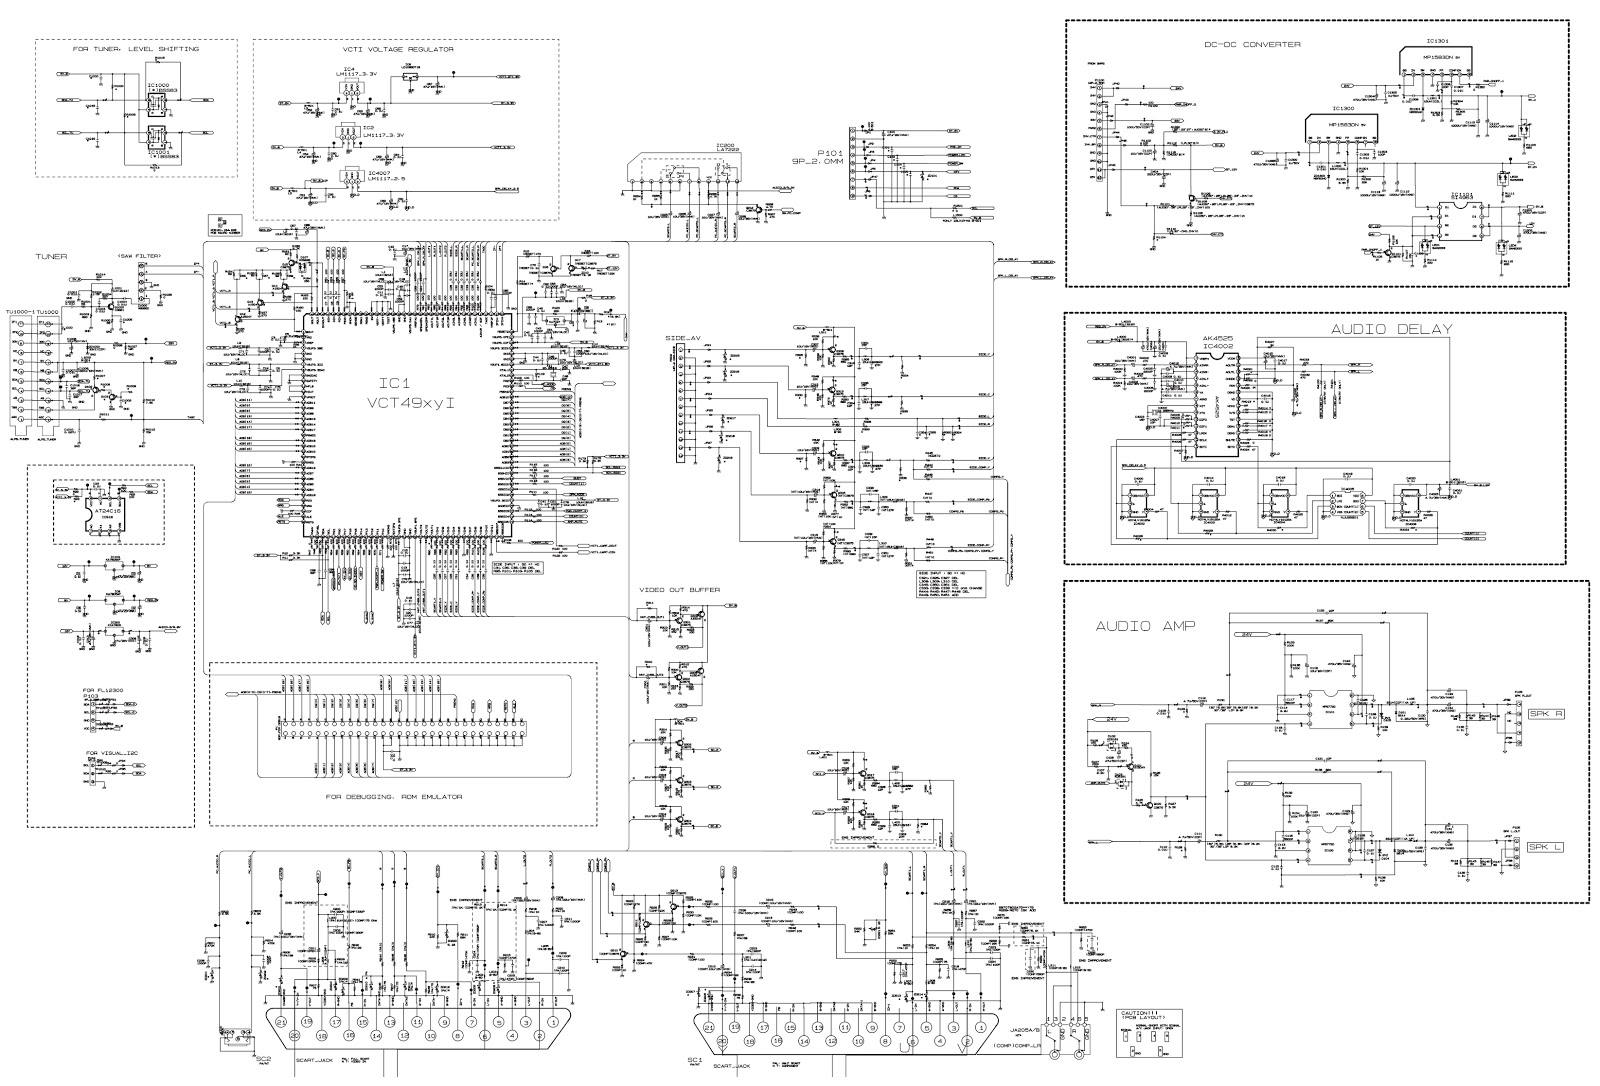 Tv Tuner Card Circuit Diagram Hdmi To Av Cable Wiring Rz26lz55 Lg Lcd Schematic Diagrams